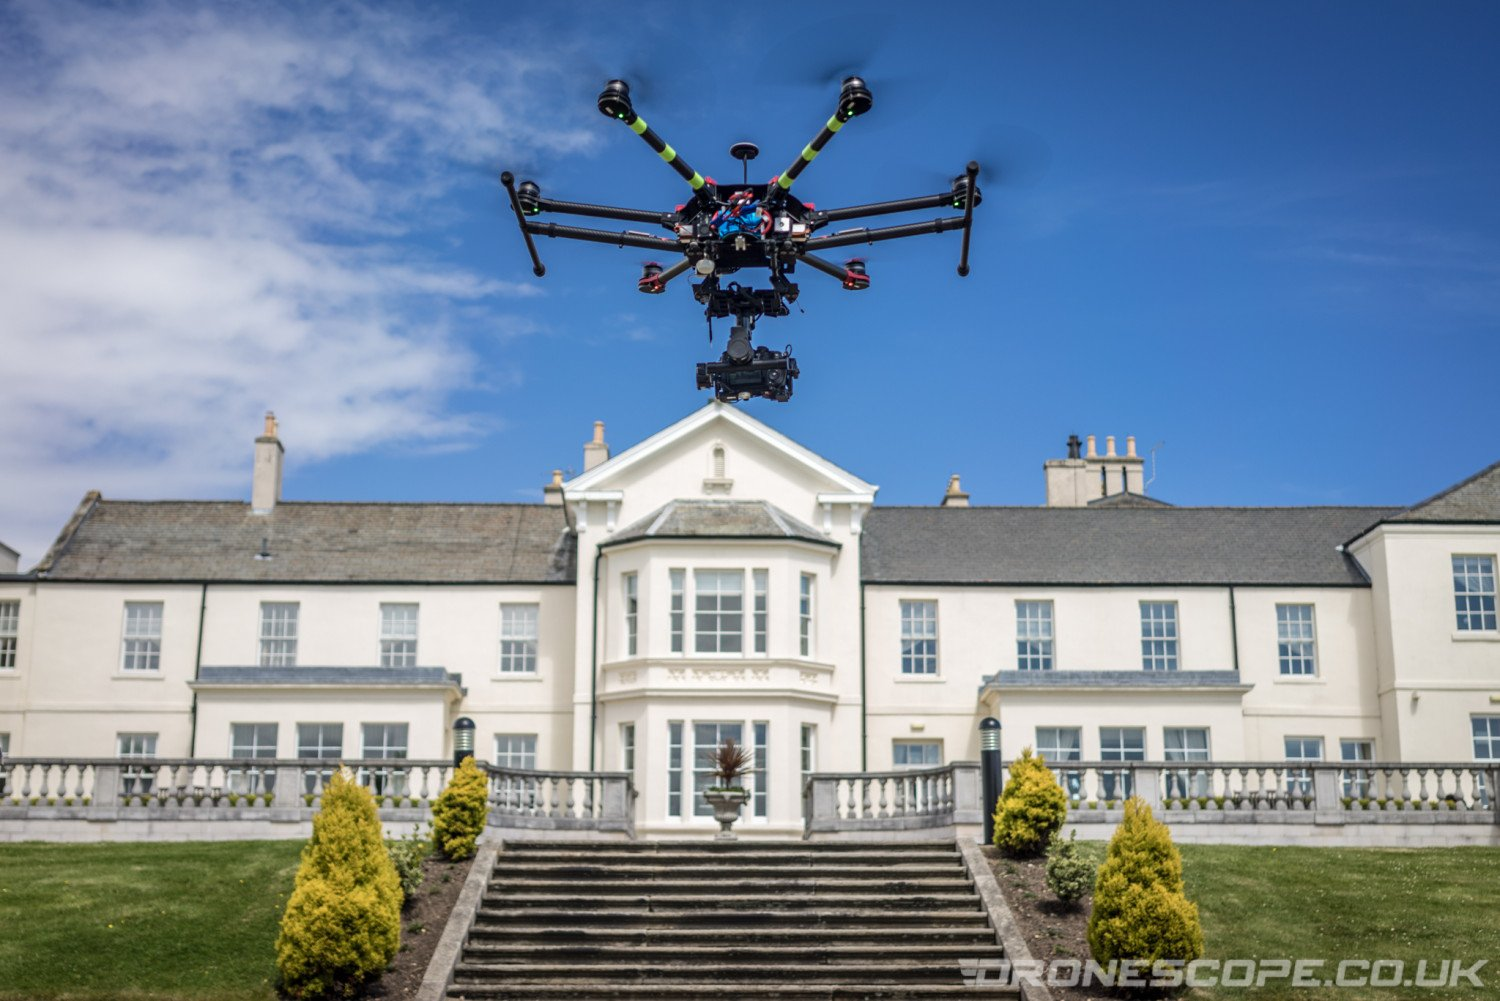 Drone filming Seaham Hall in County Durham